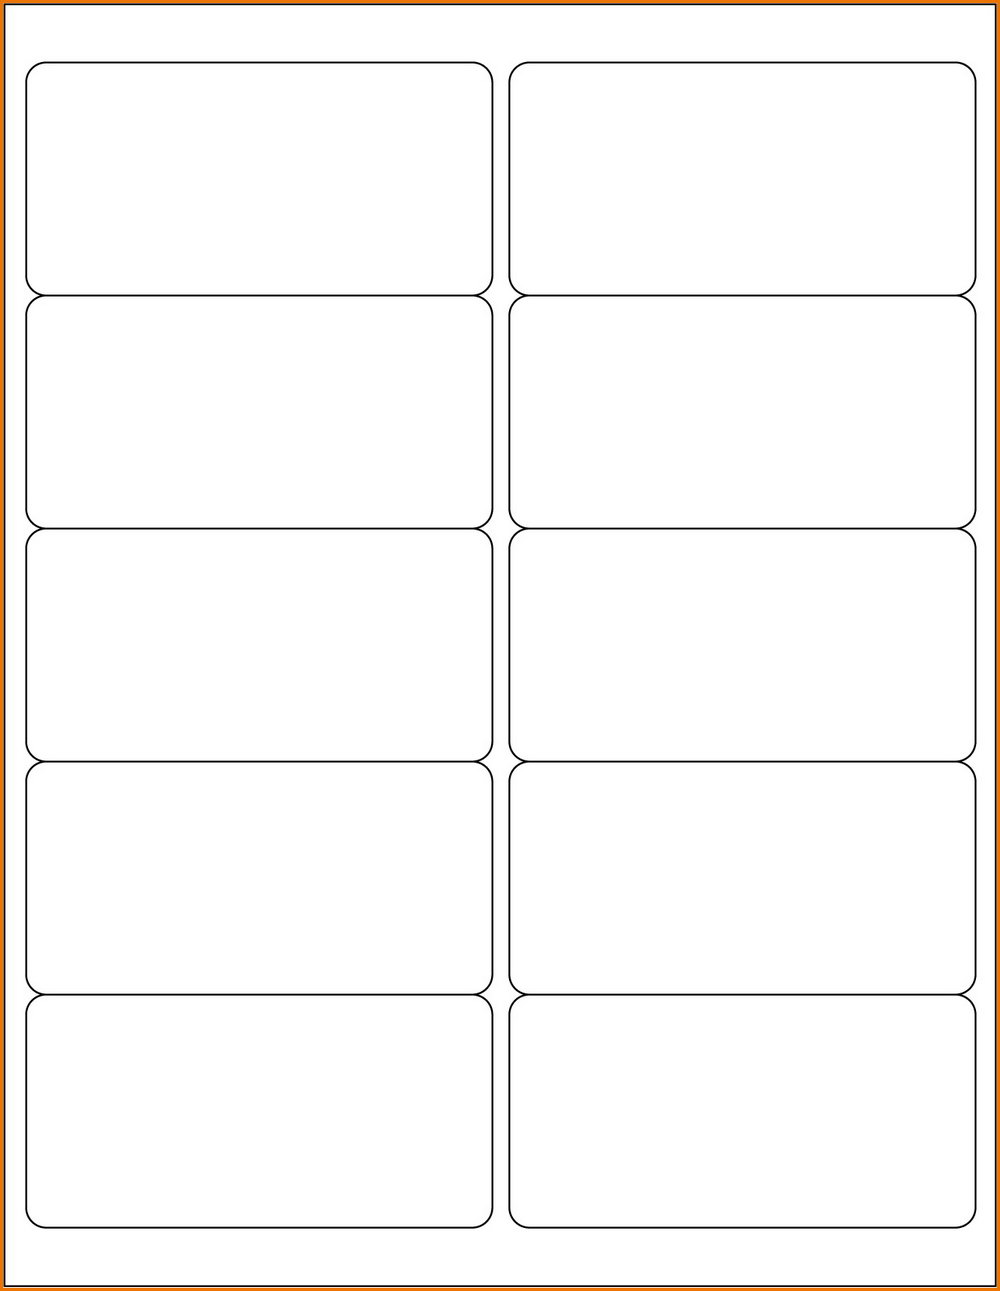 2×4 Label Template Google Docs